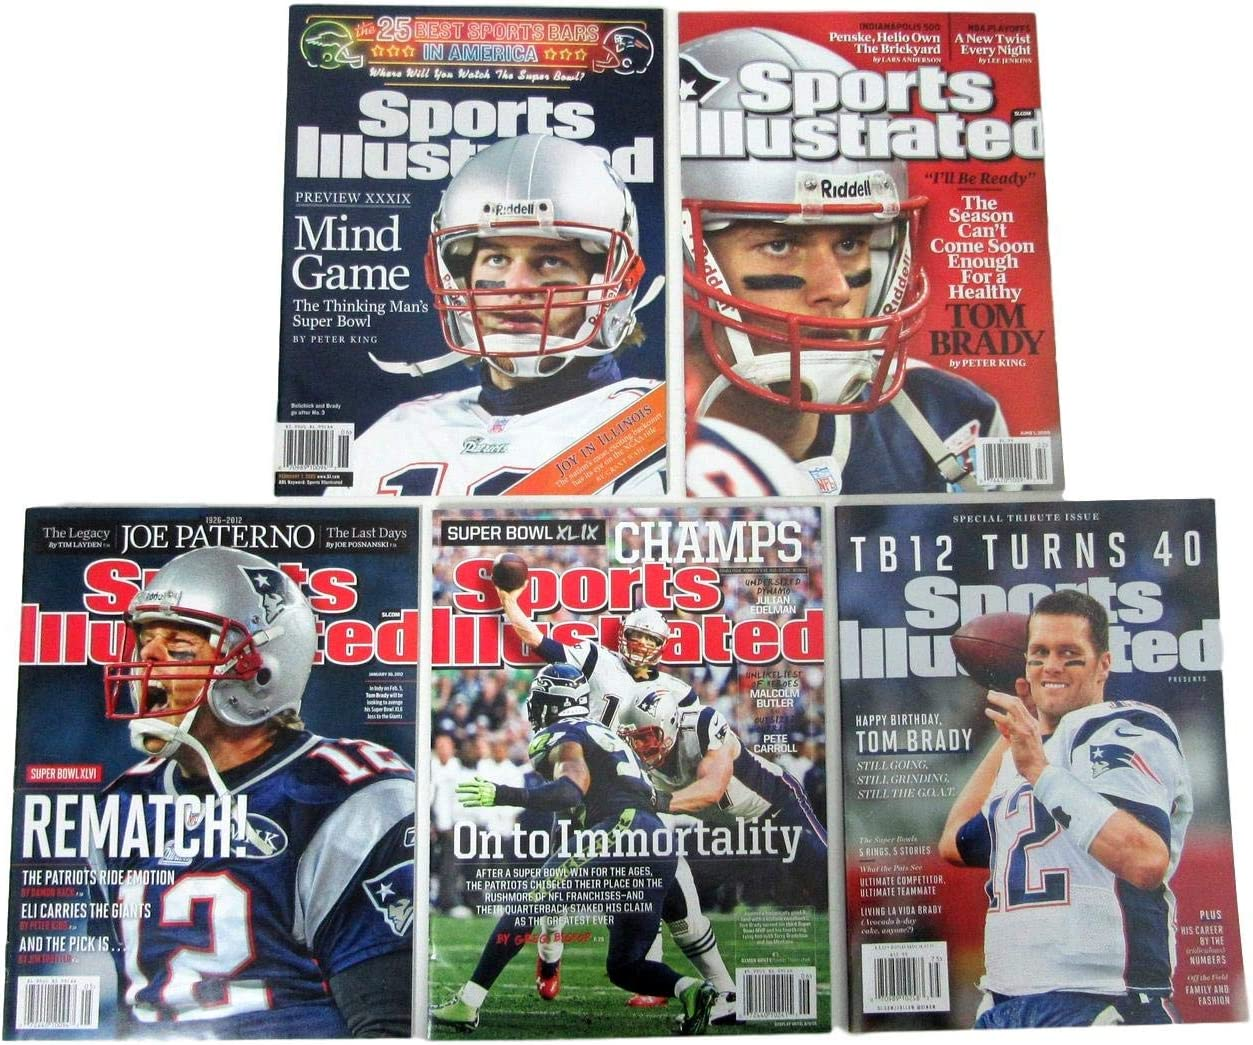 Lot of 5 Tom Brady Patriots Mags Large discharge sale Illustrated w No Sports 40% OFF Cheap Sale Mailing